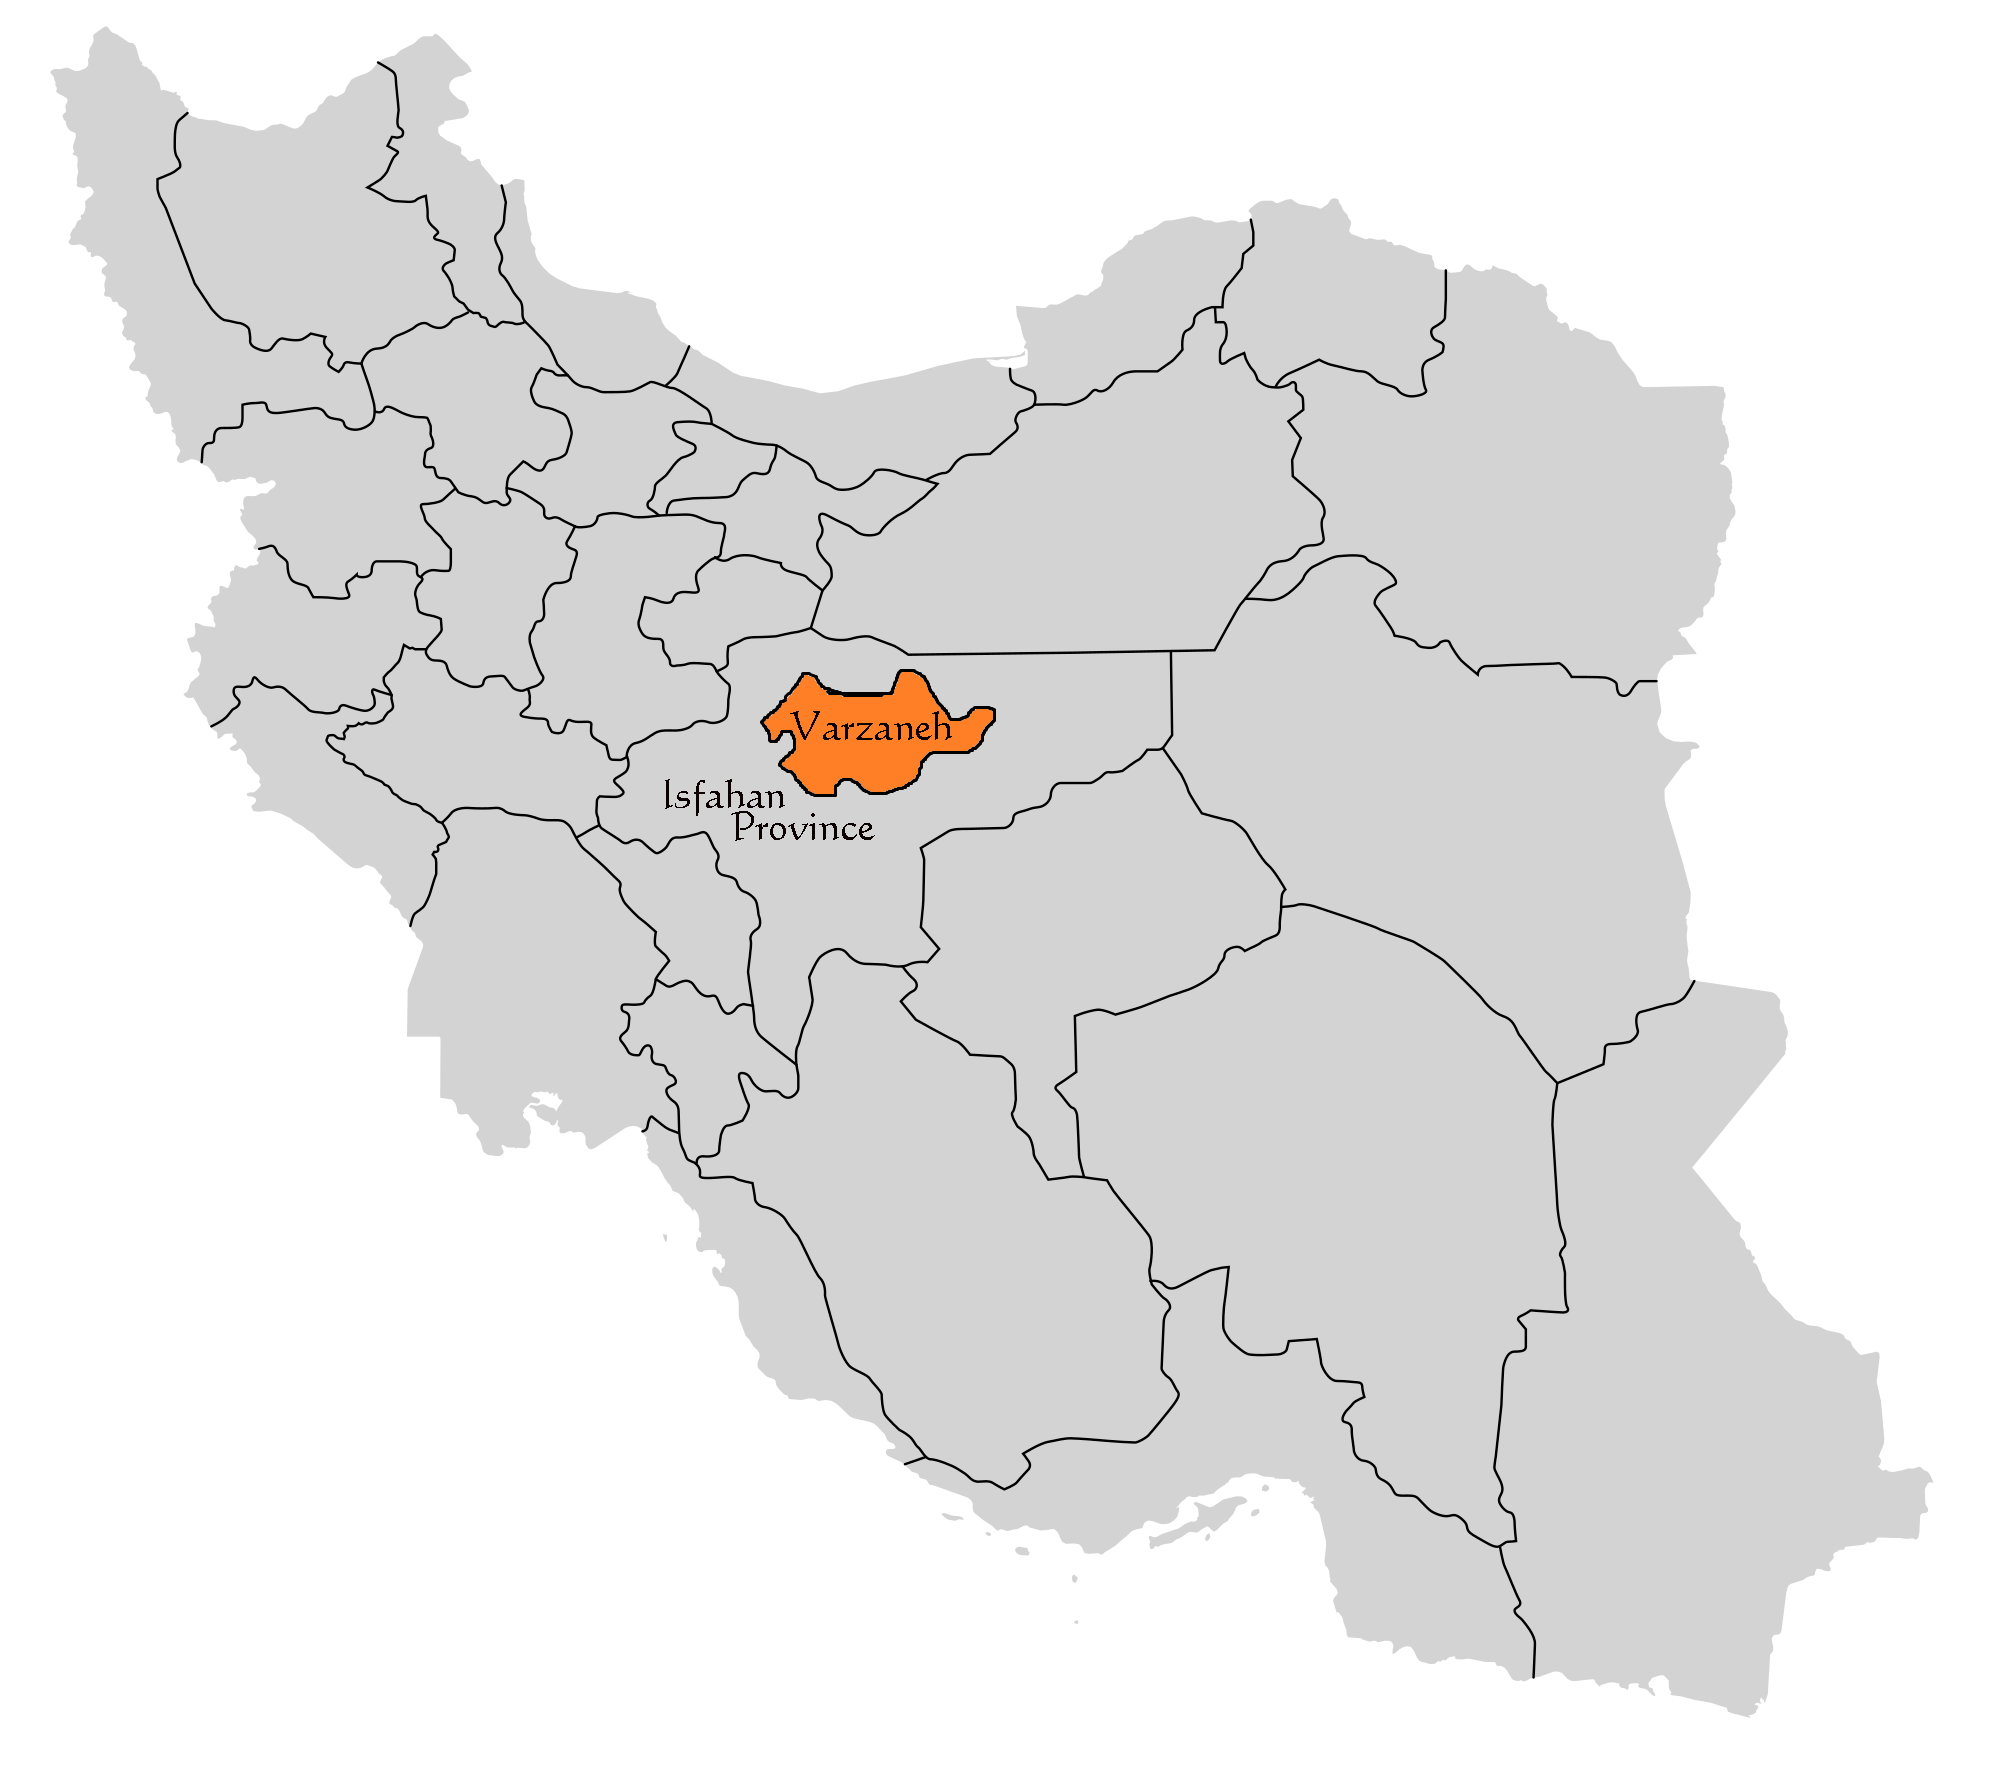 Varzaneh on Map